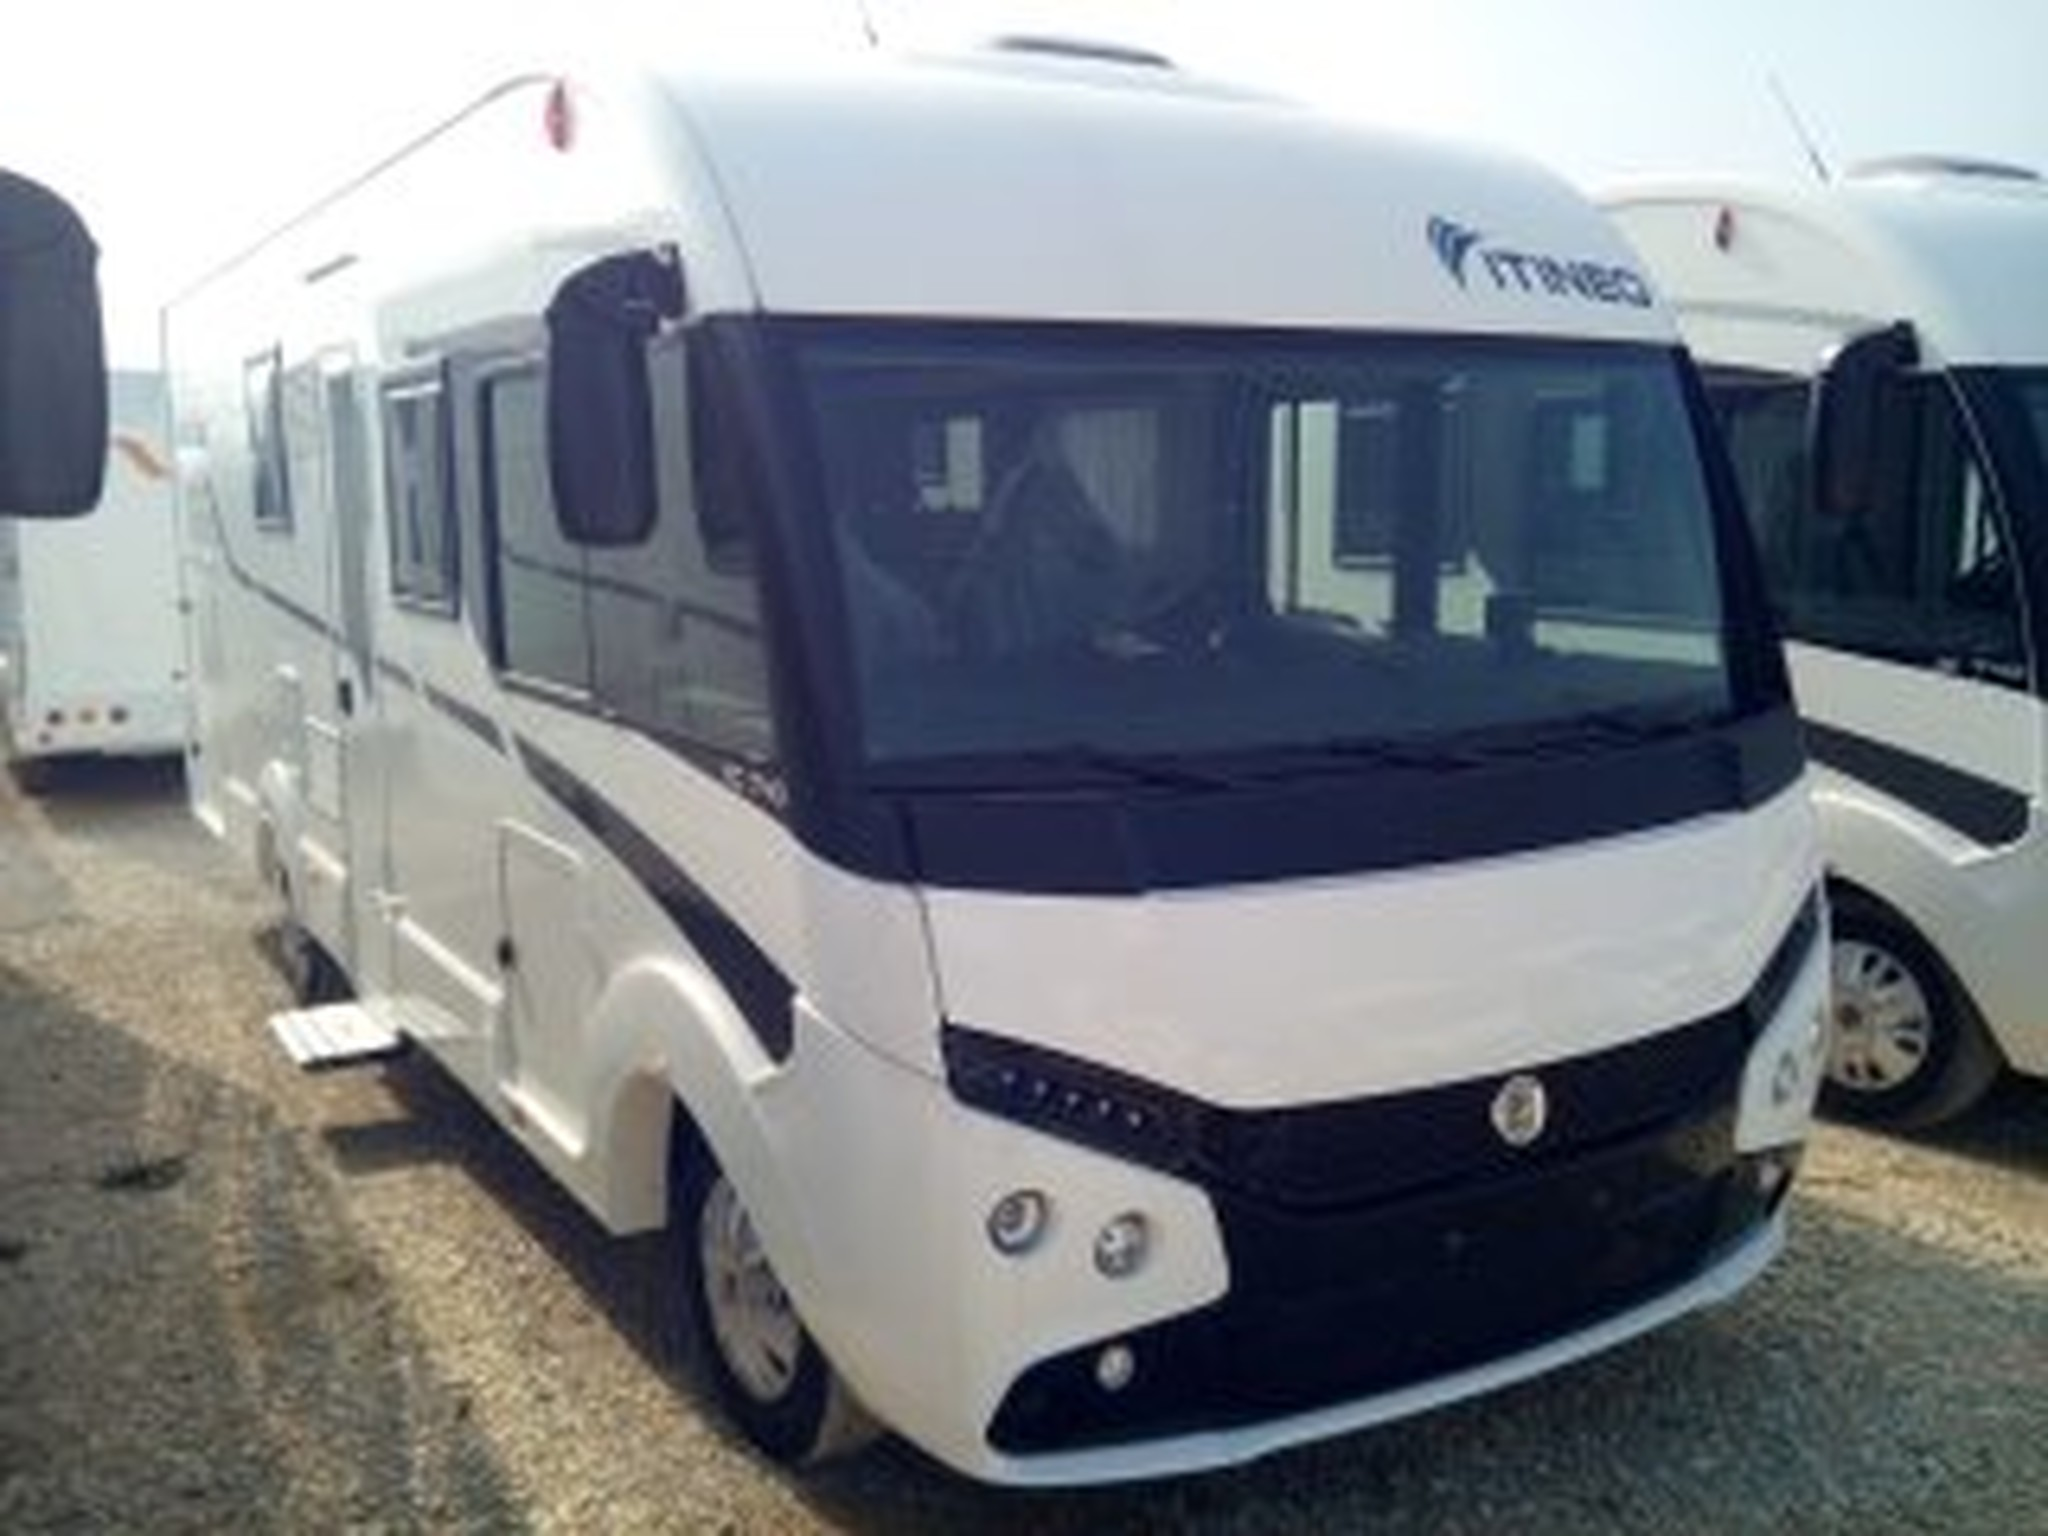 Camping-car ITINEO Tc 740